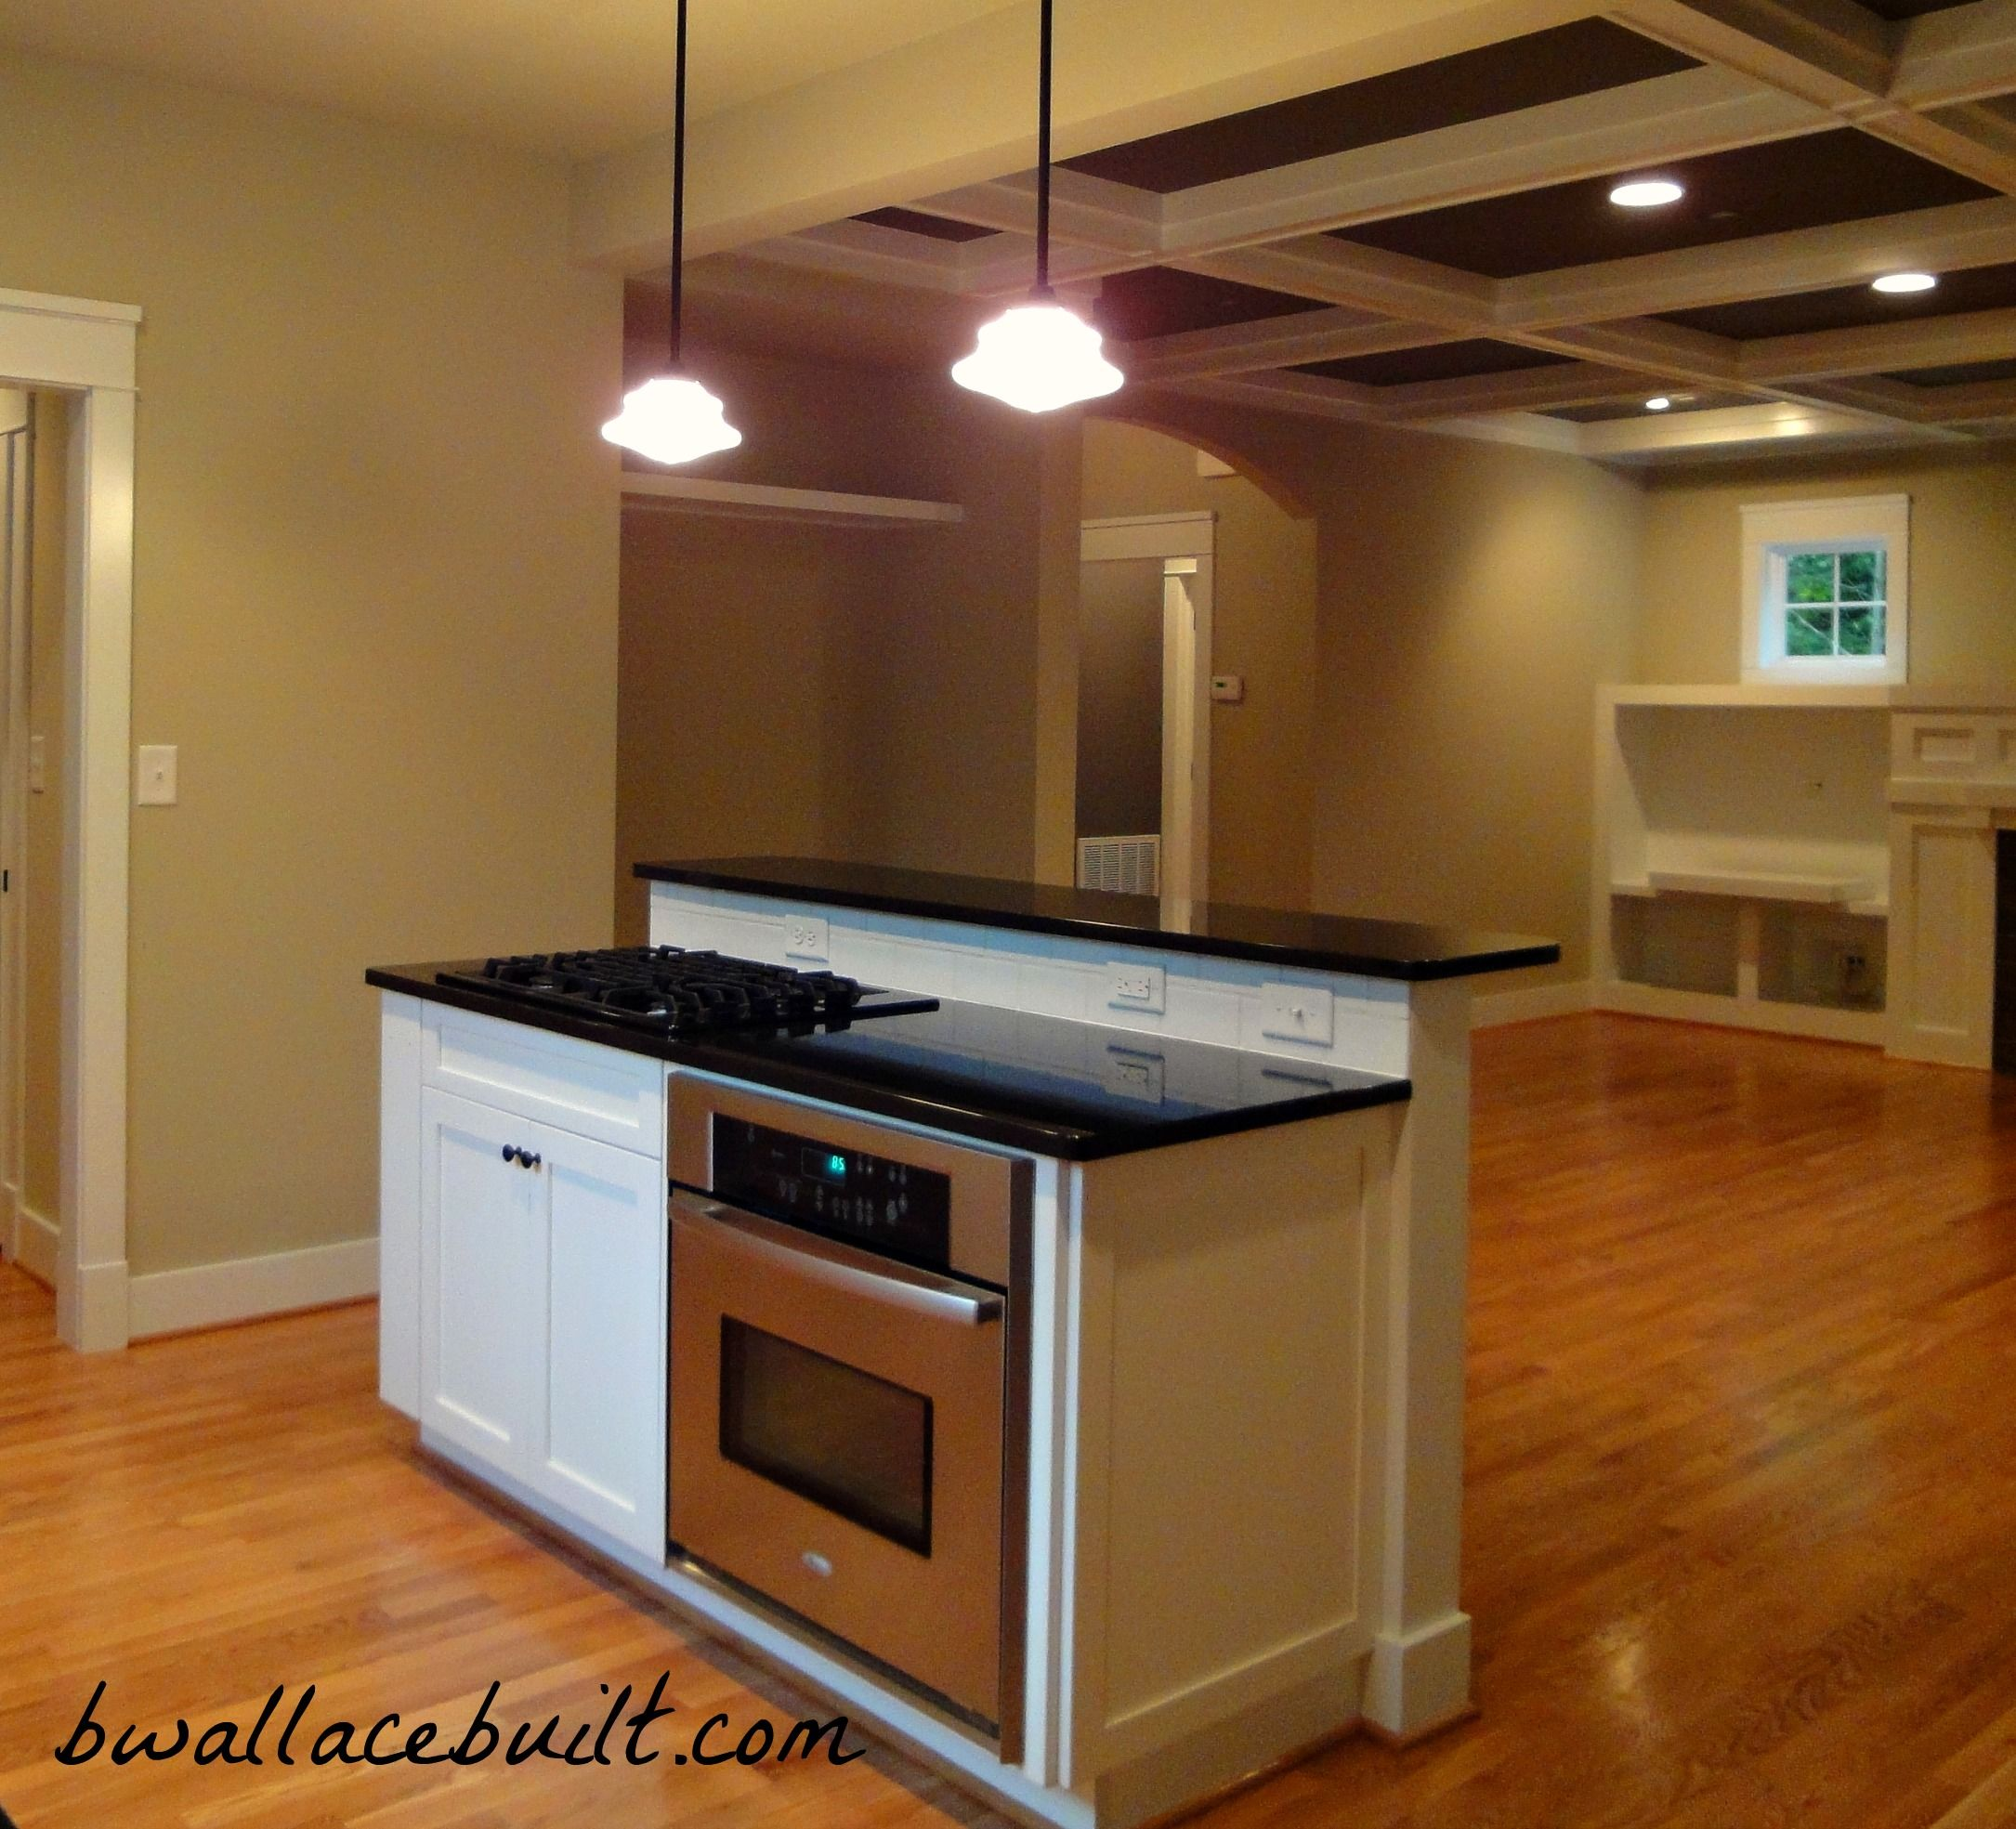 Kitchen Island With Slide In Stove kitchen island with separate stove top from oven. | perfect